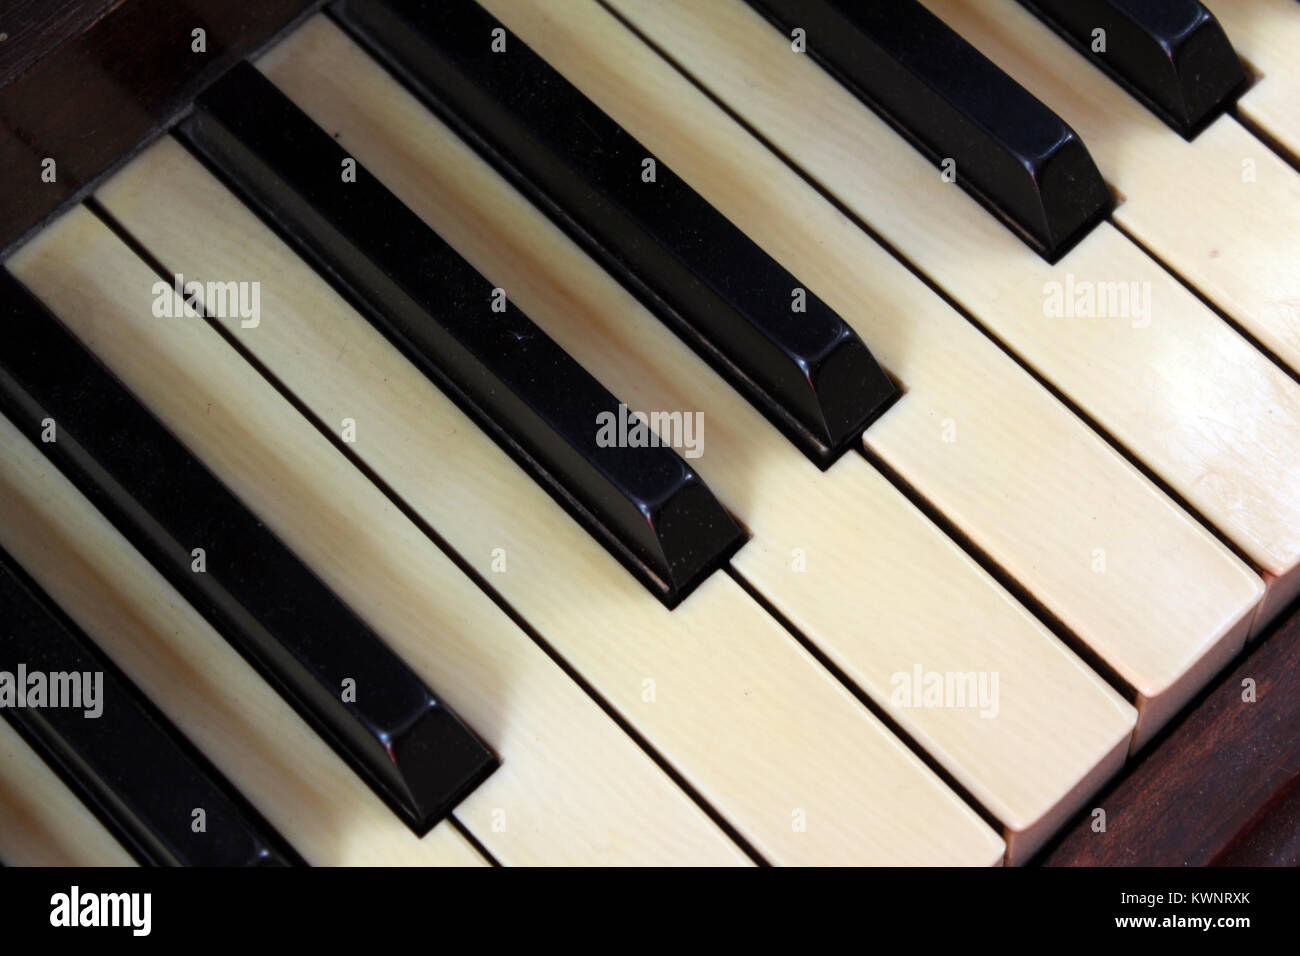 Piano keys on keyboard - Stock Image